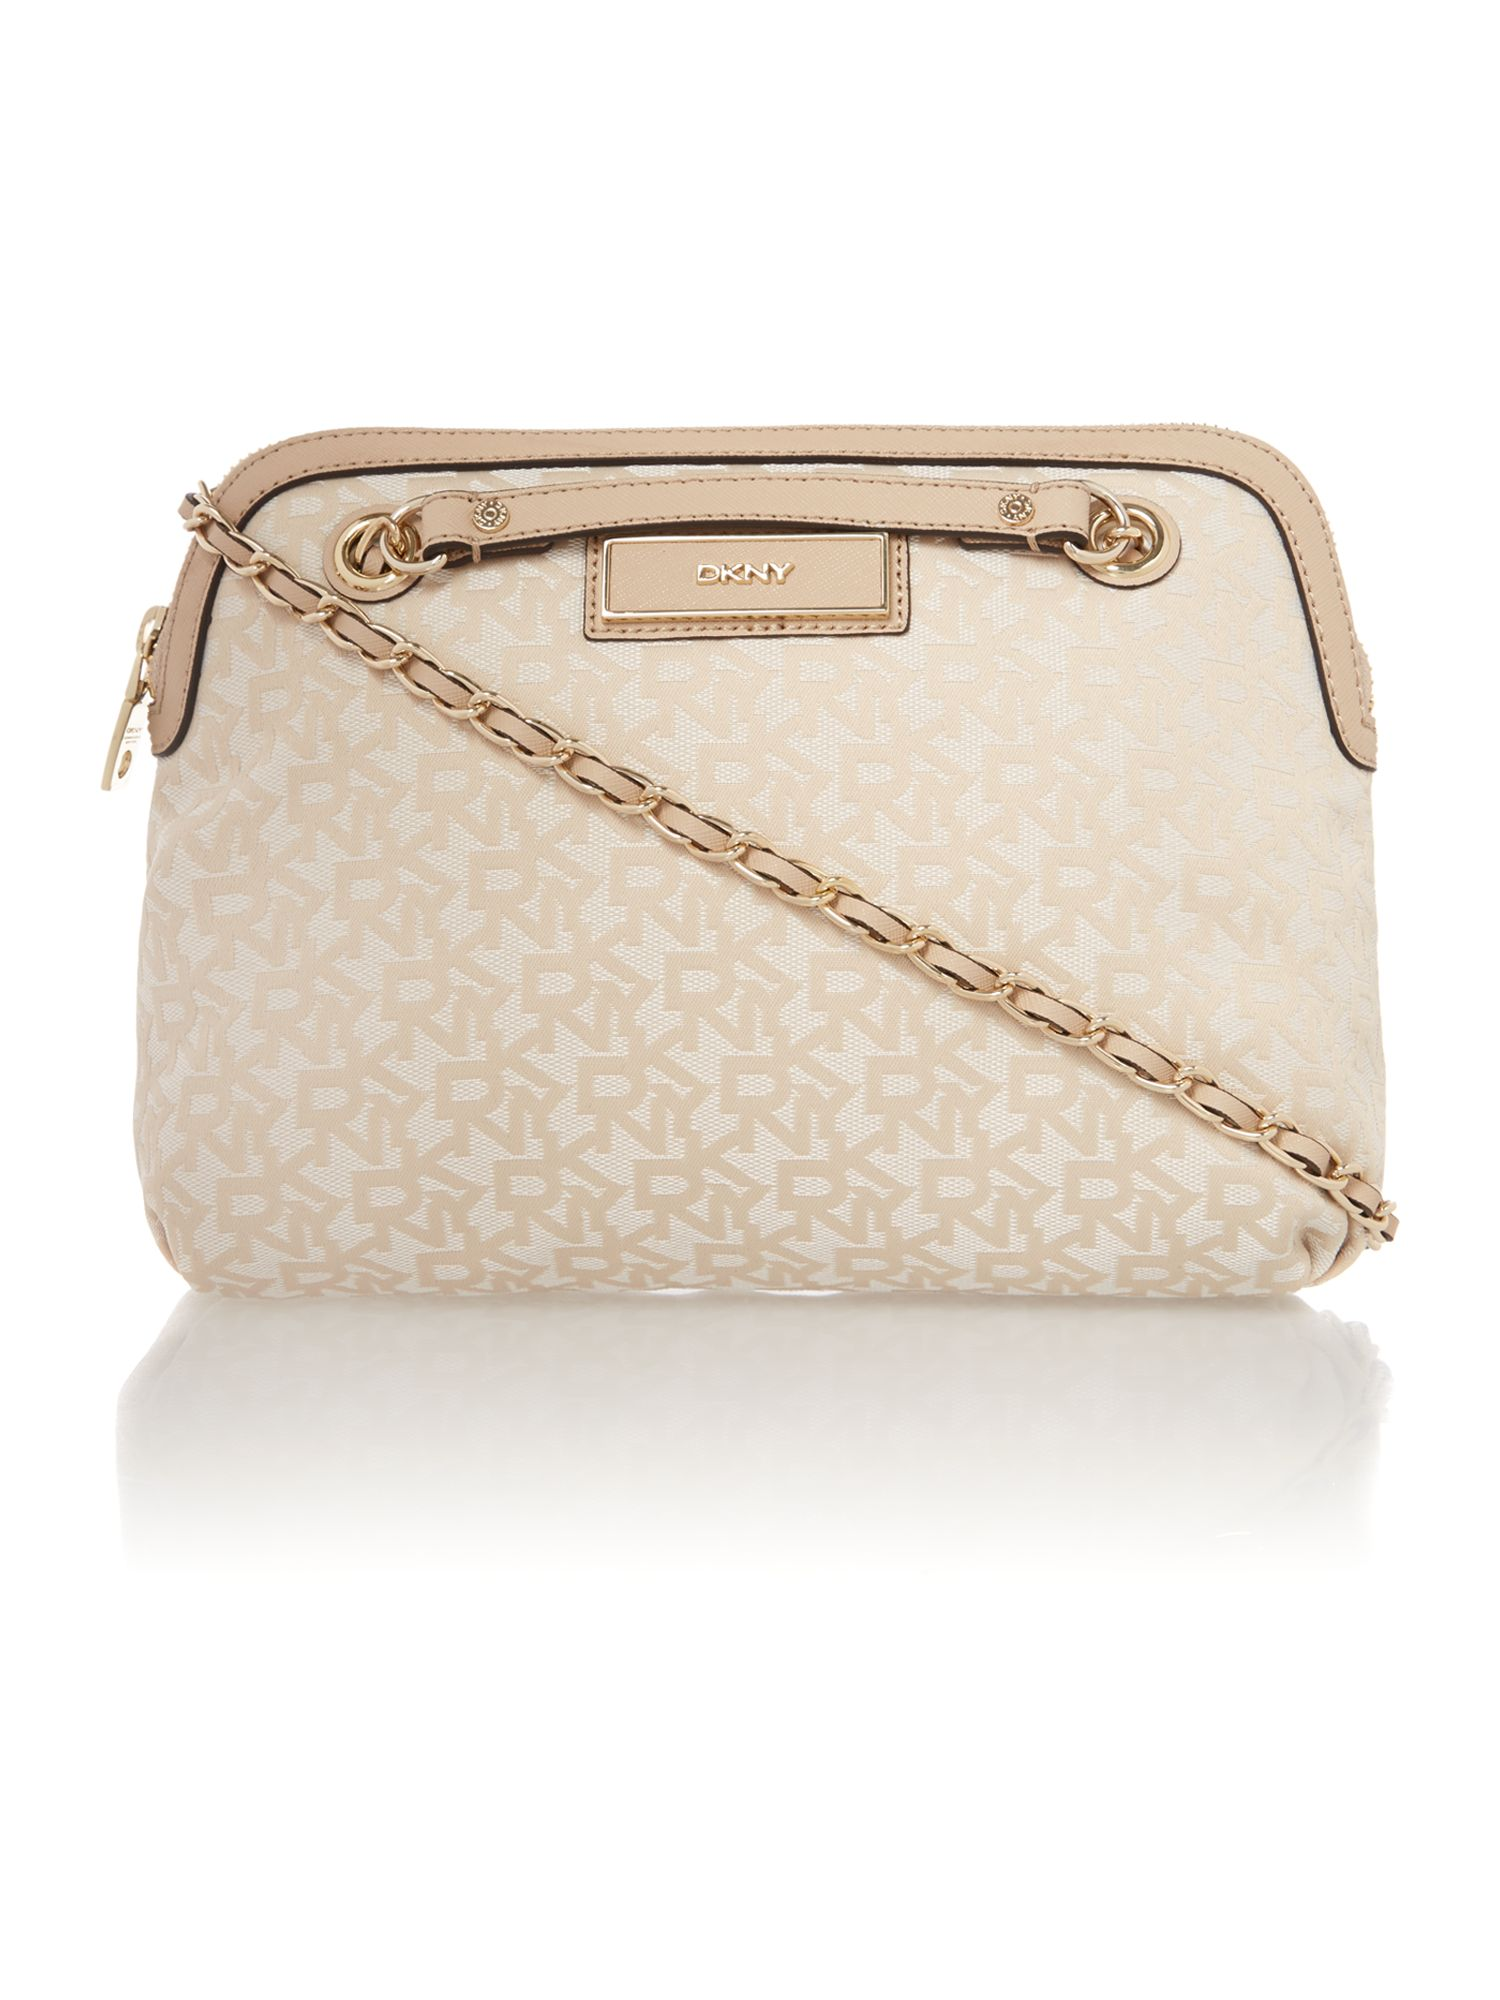 Saffiano neutral medium crossbody bag